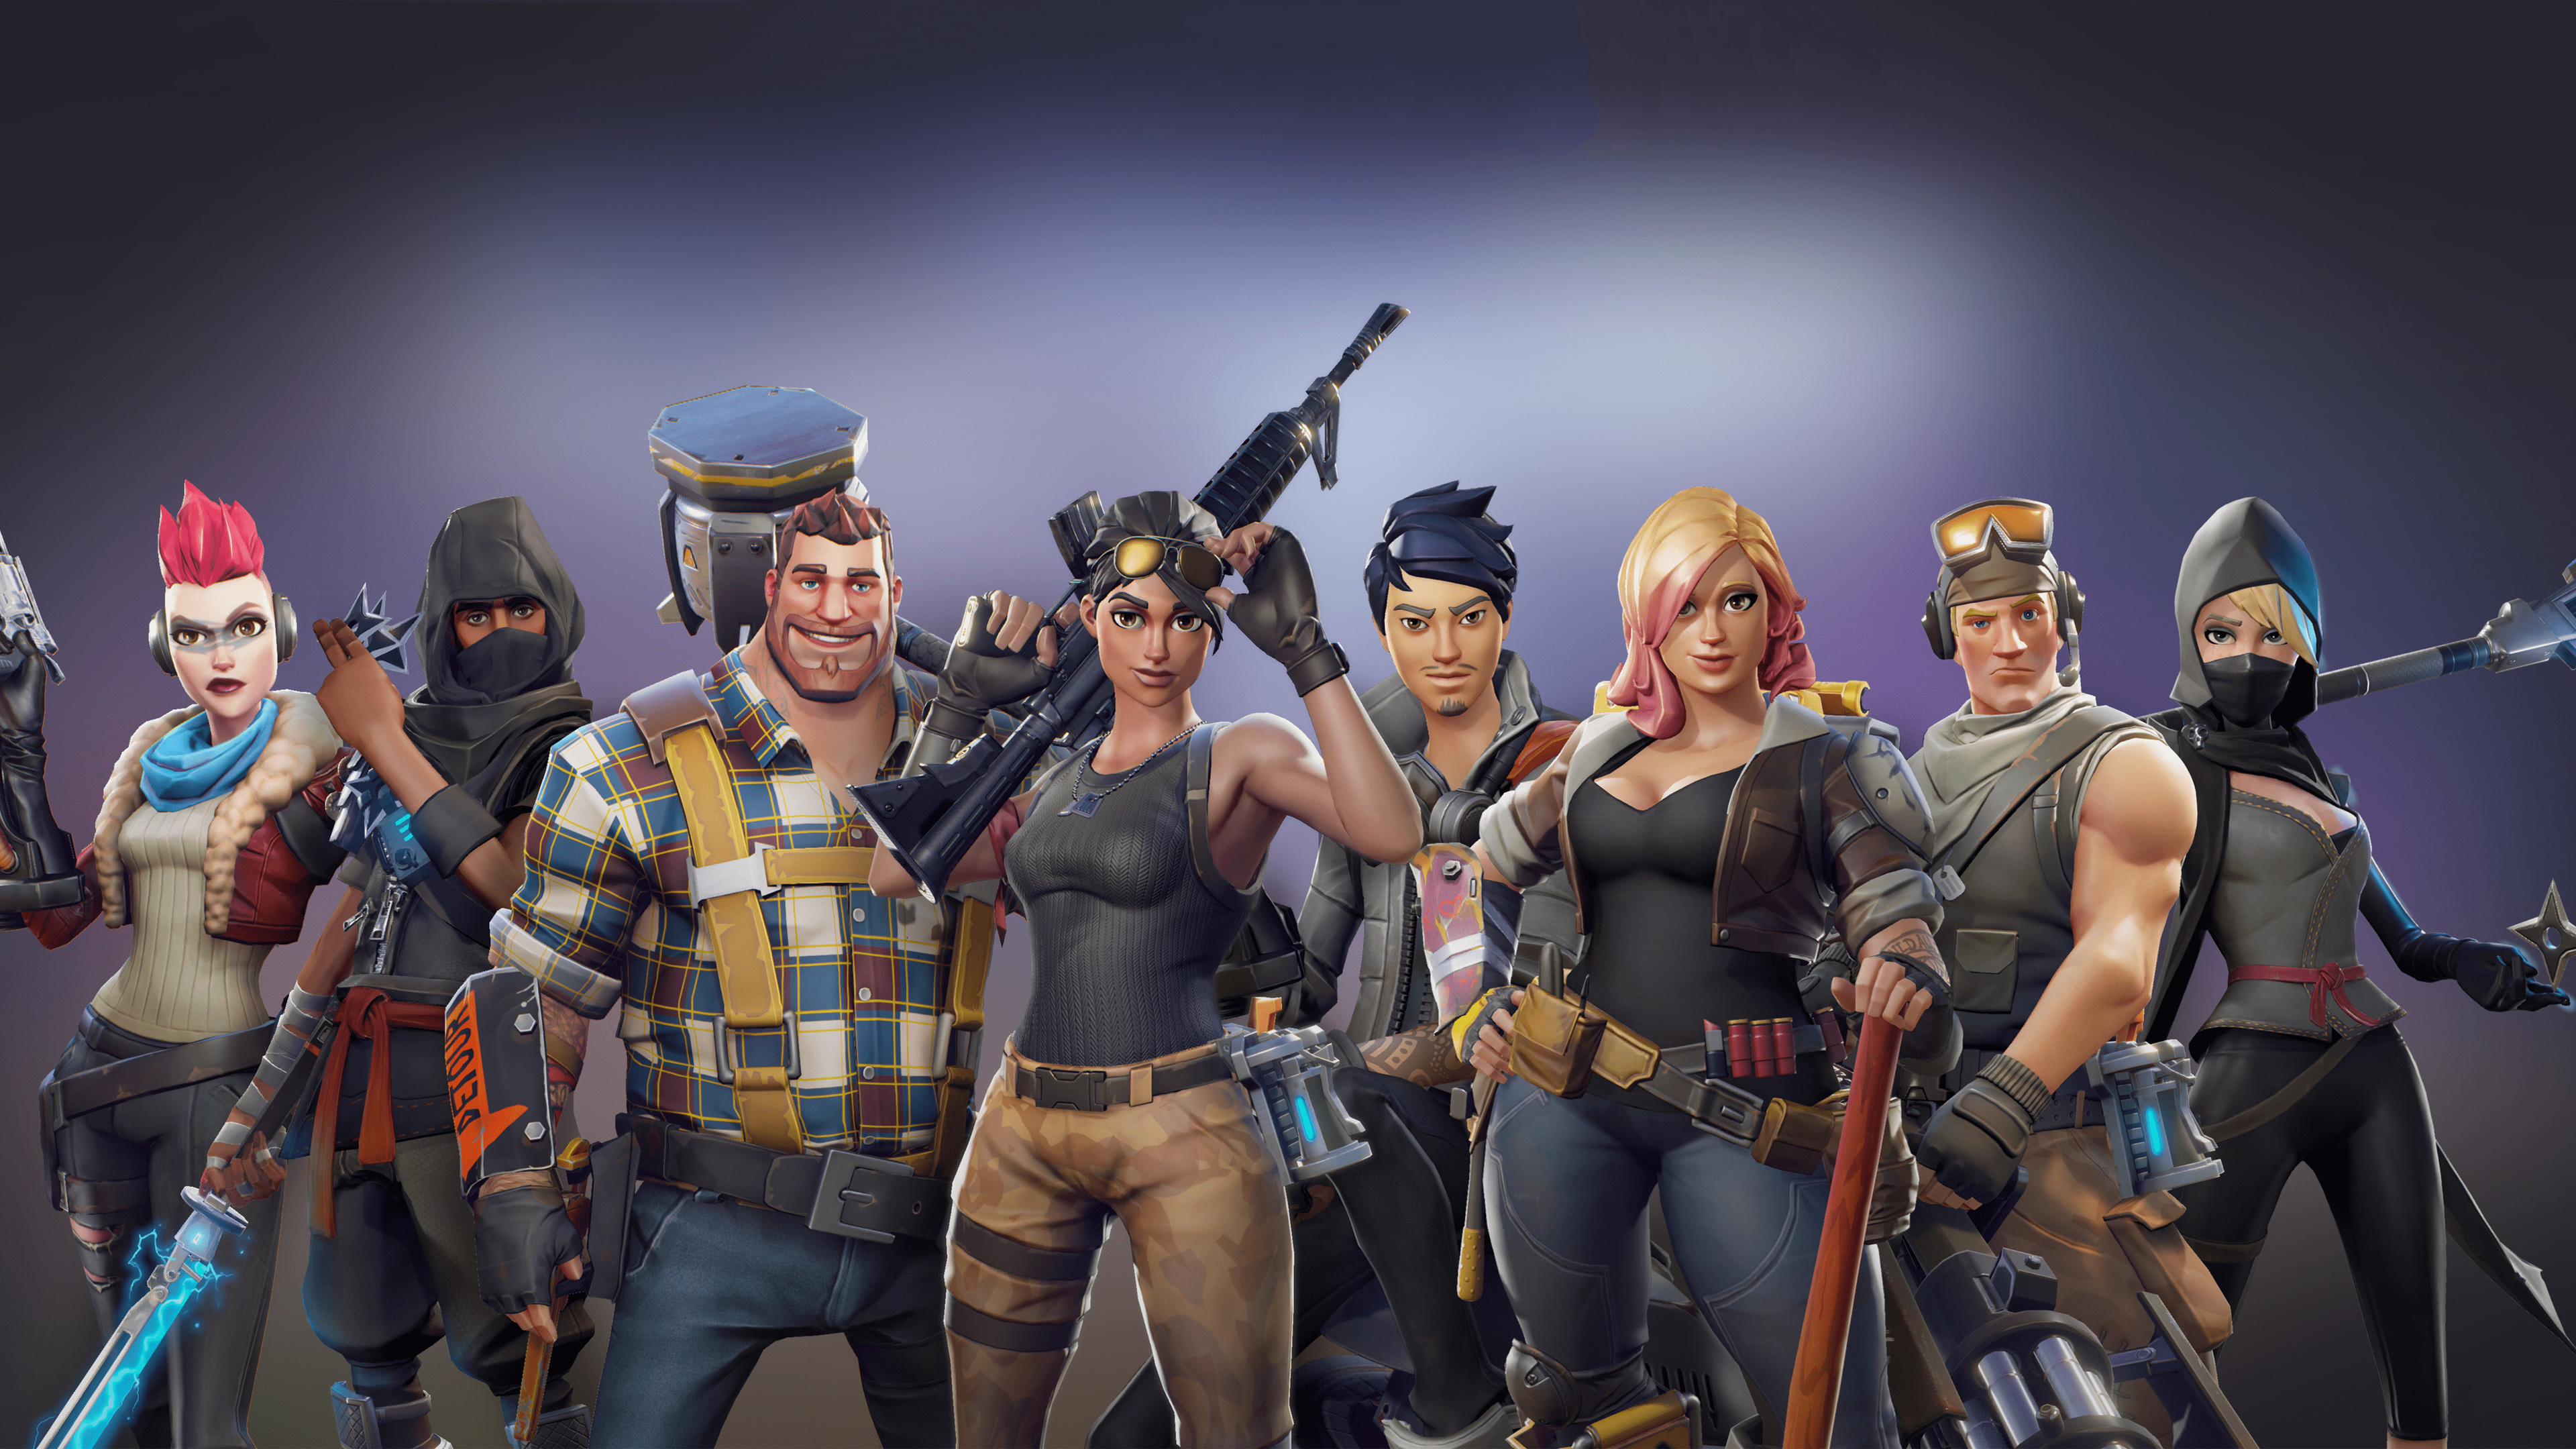 Fortnite 2018 4k Ps Games Wallpapers, Hd-wallpapers, Games